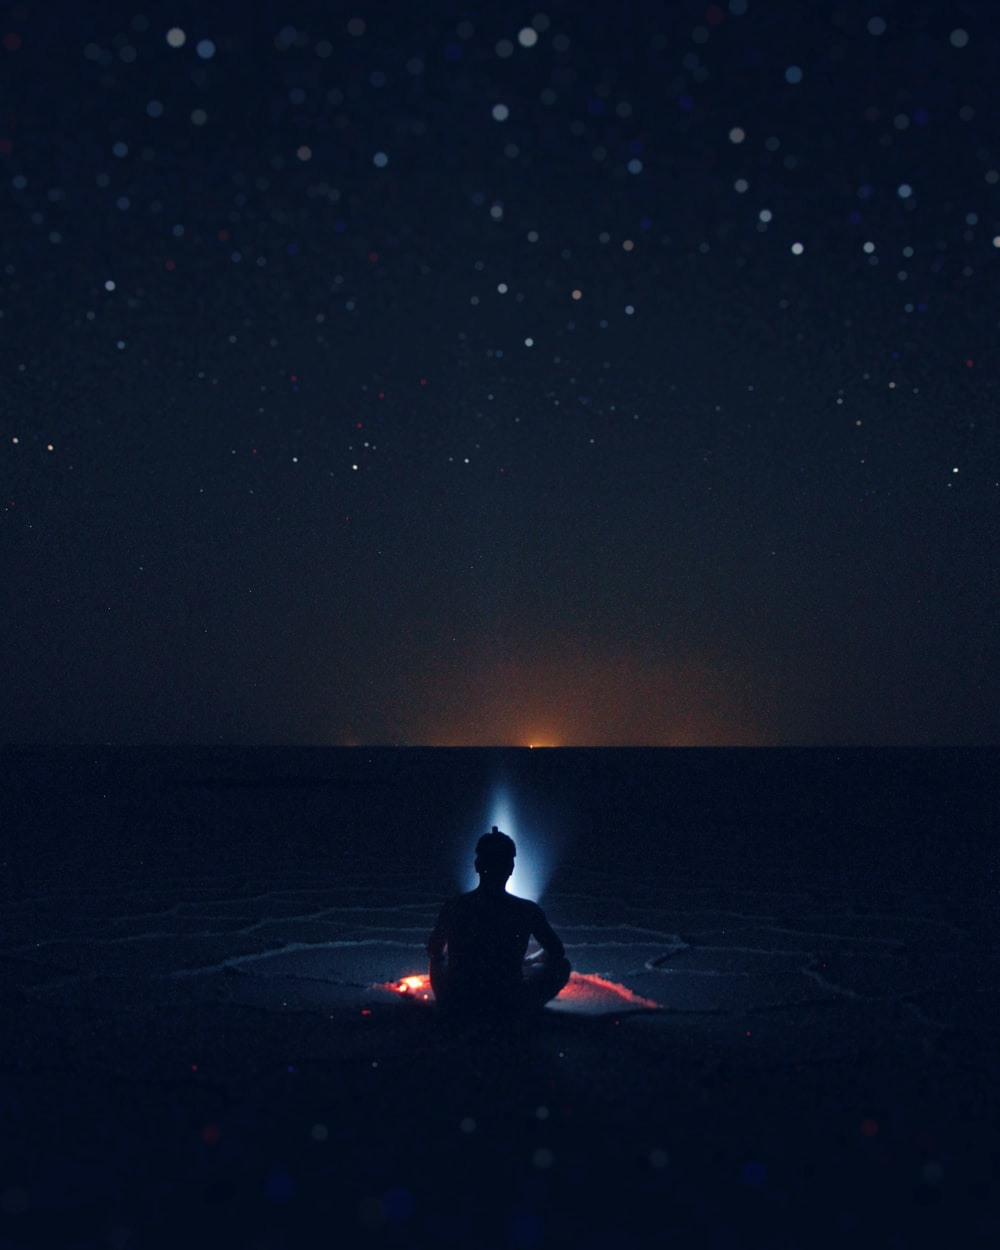 silhouette of person sitting on shore beside bonfire digital painting